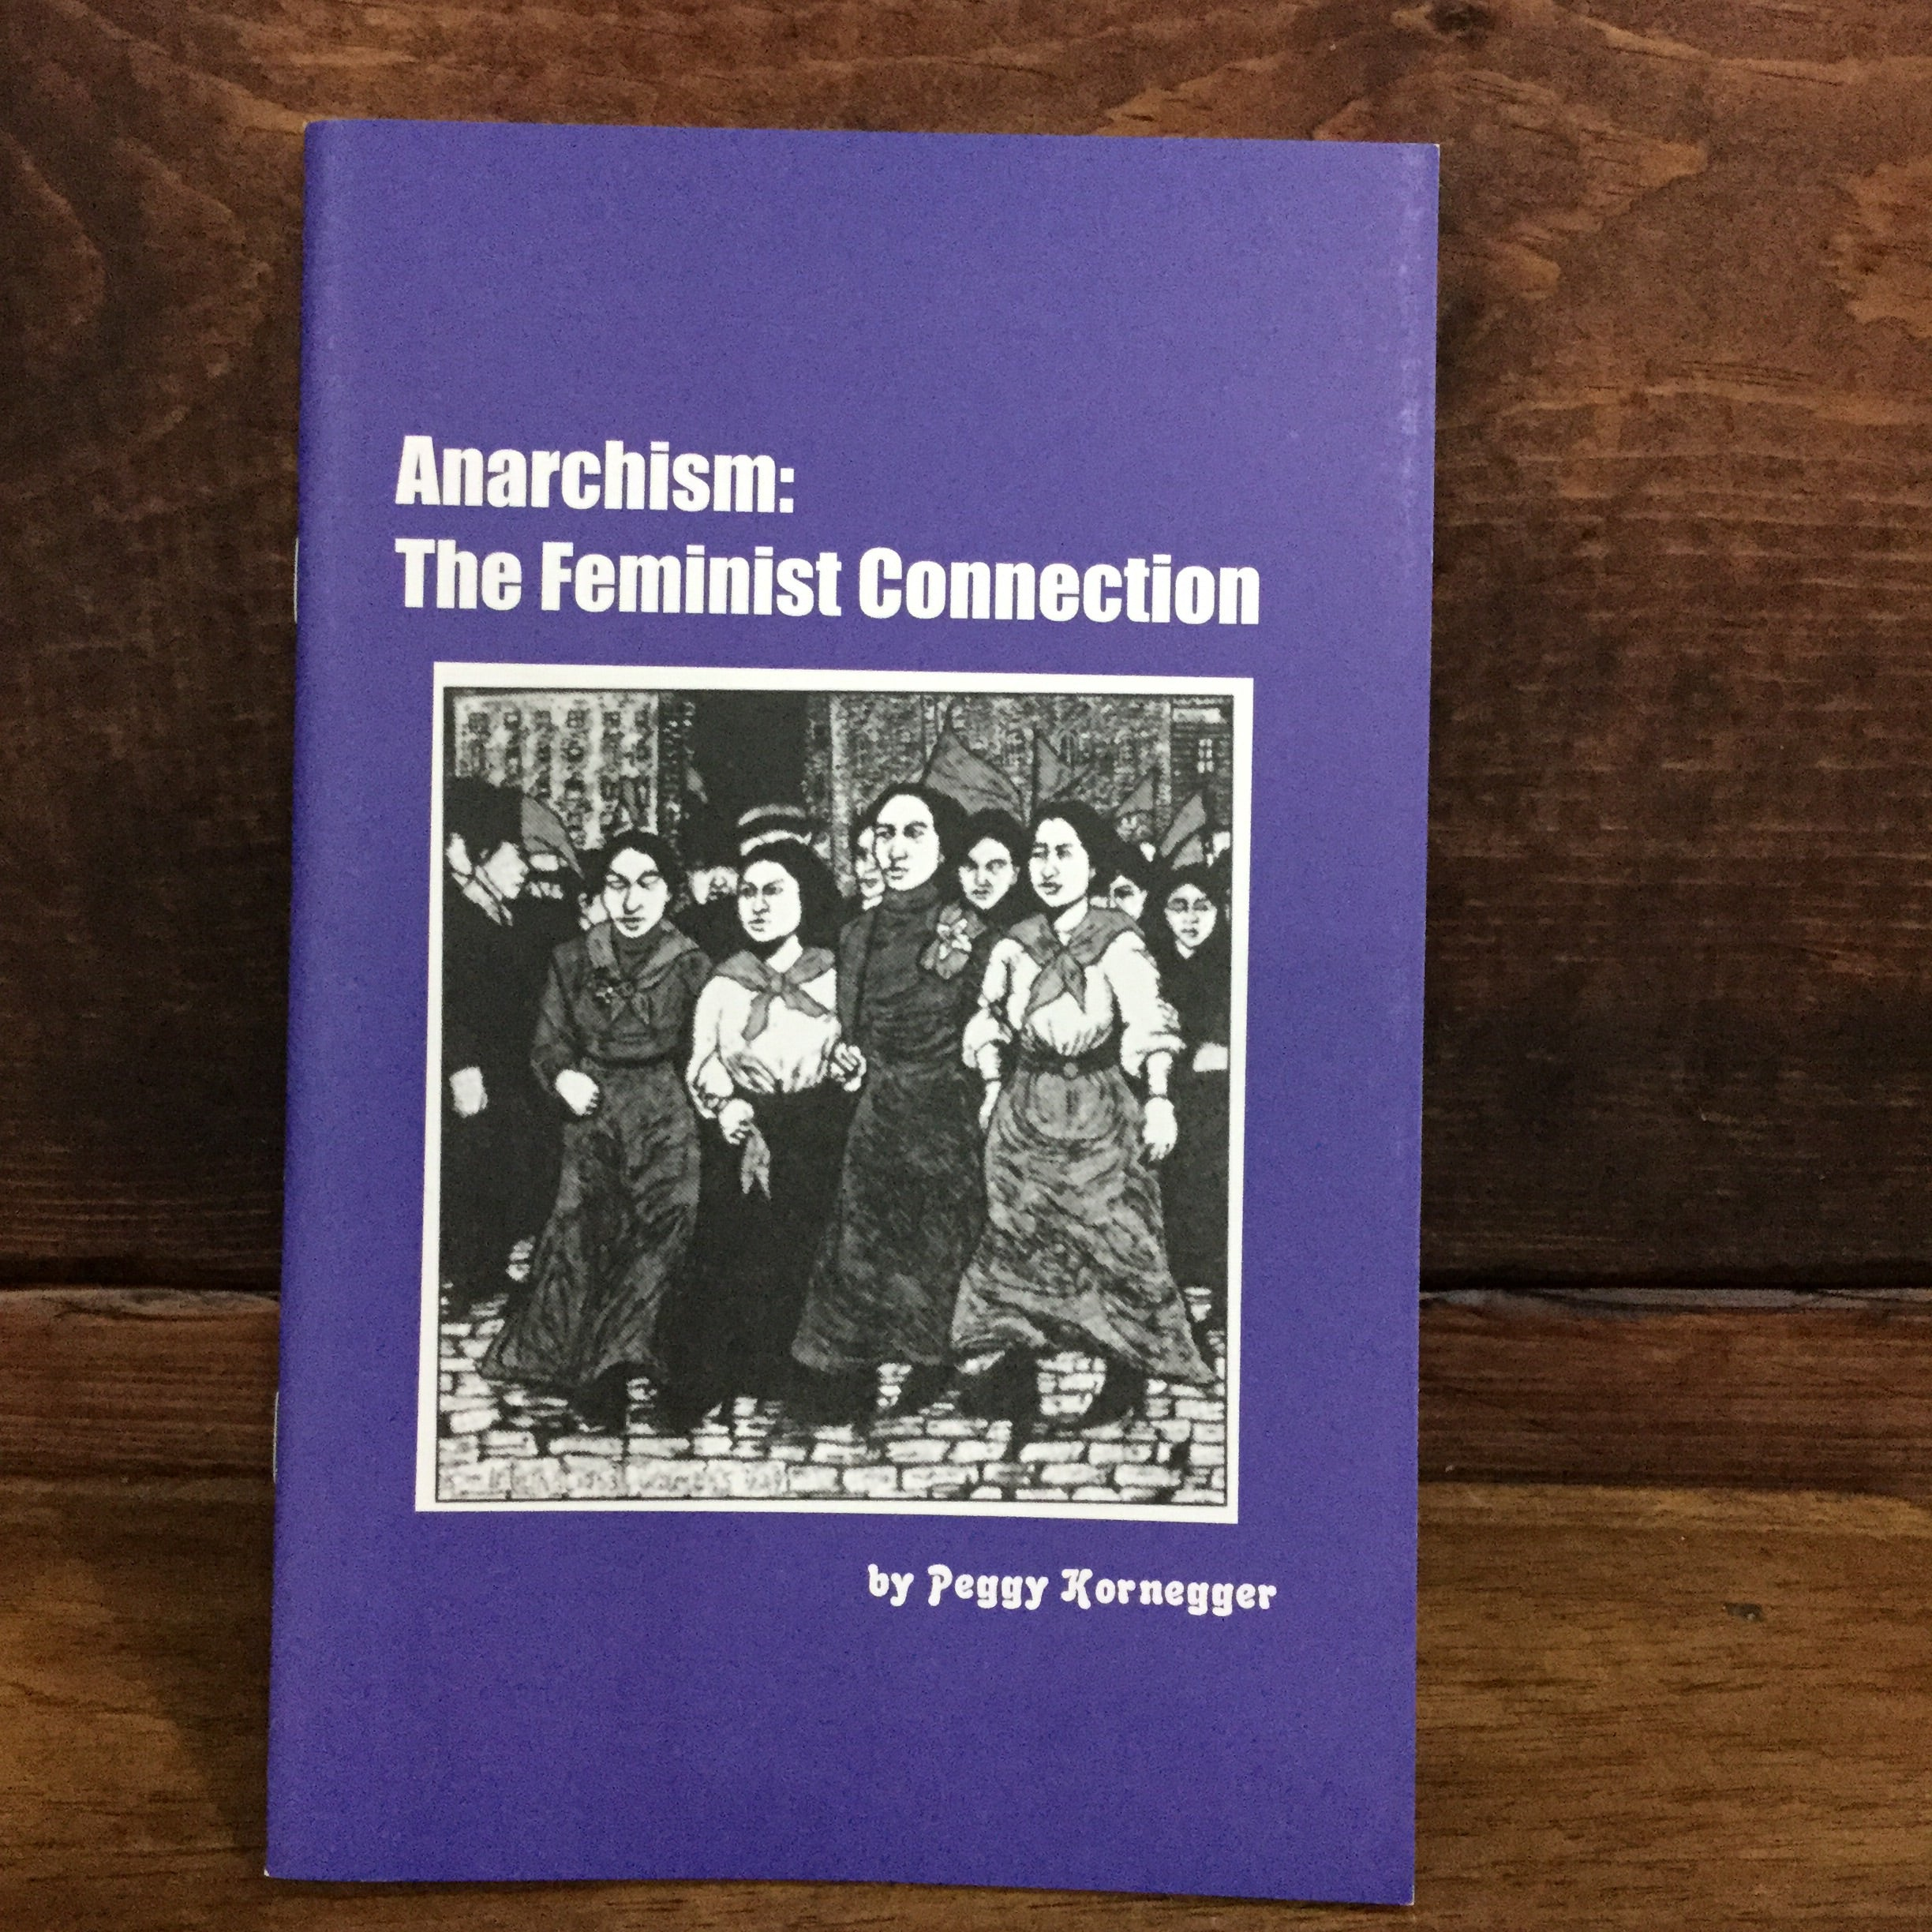 Anarchism The Feminist Connection | AK PRESS | Chico,CA at Sustain - Gallery and Shop - Chicago, IL